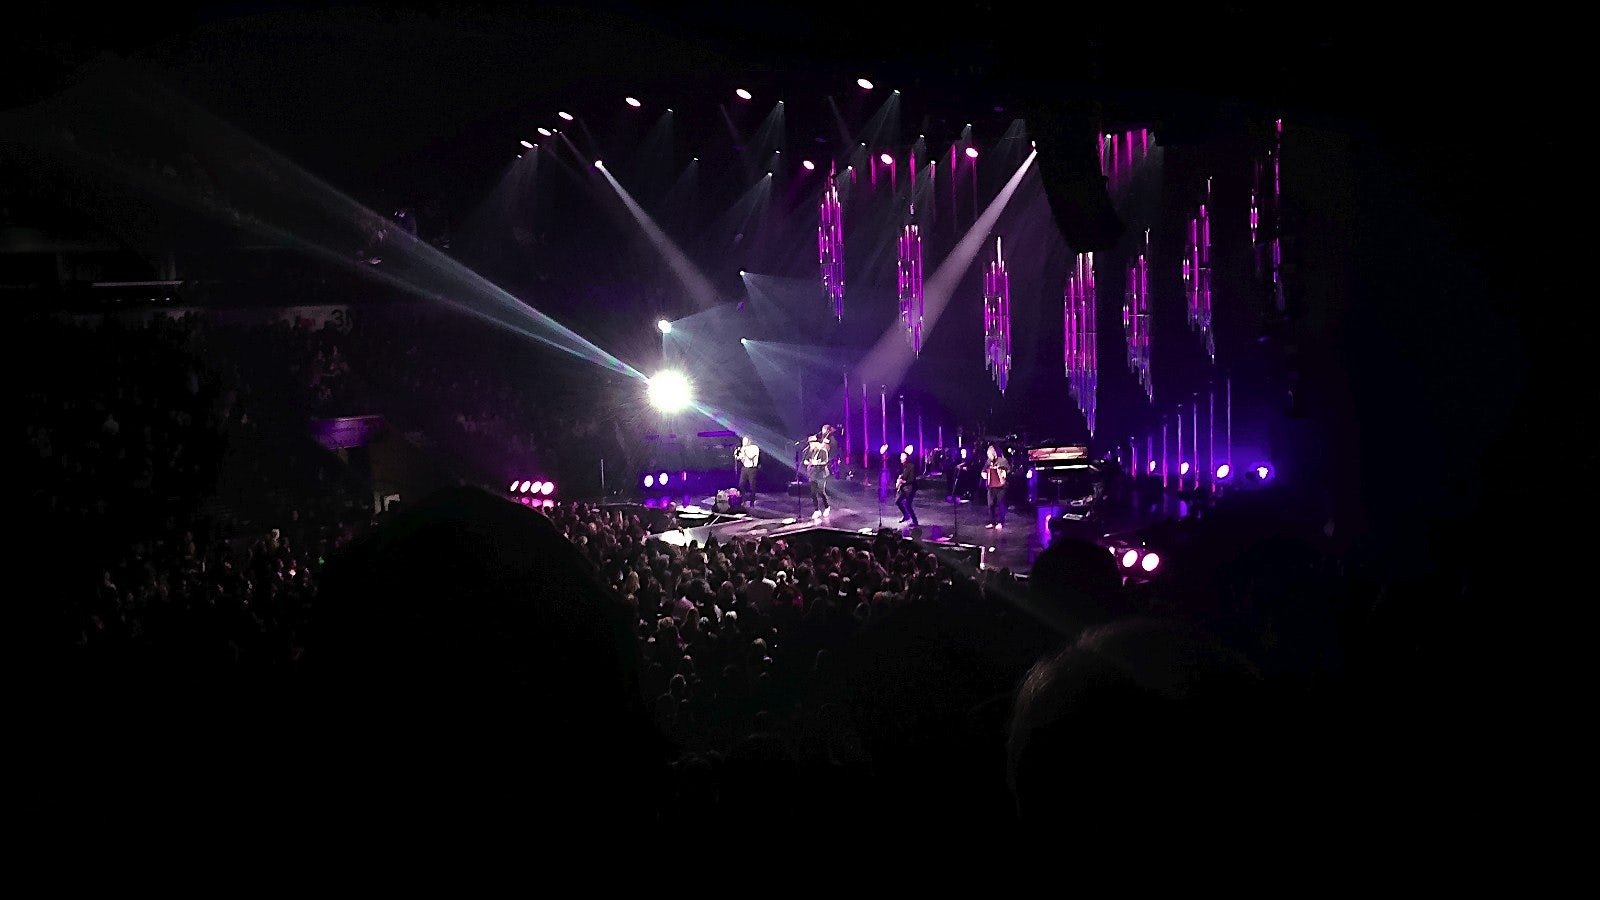 iPhone6 photo of The Lumineers playing at Budweiser Gardens in London Ontario